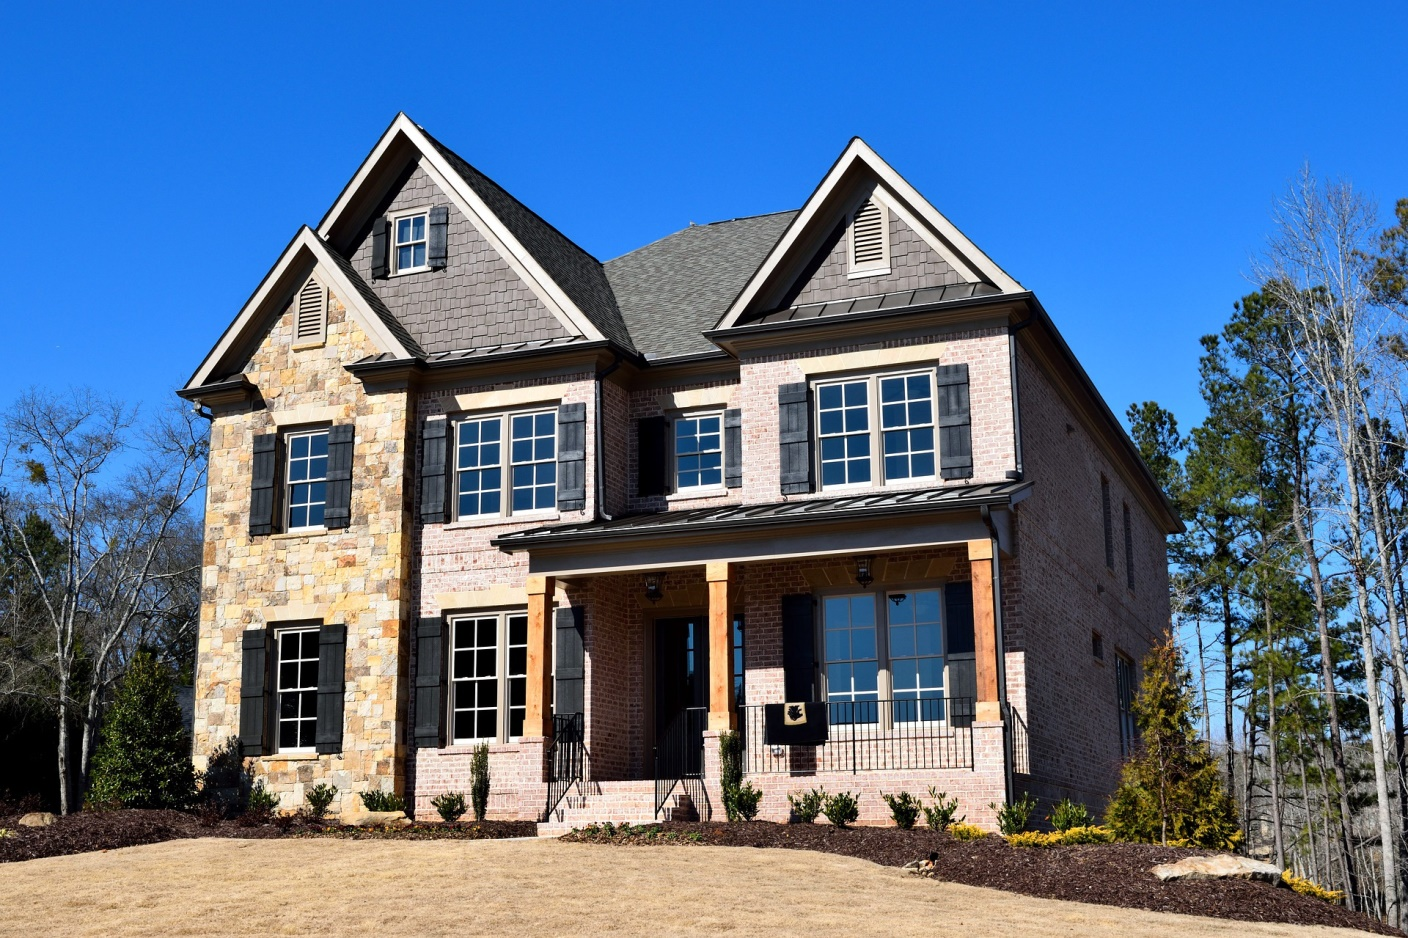 What Window Features Should You Look for When Purchasing a New Home